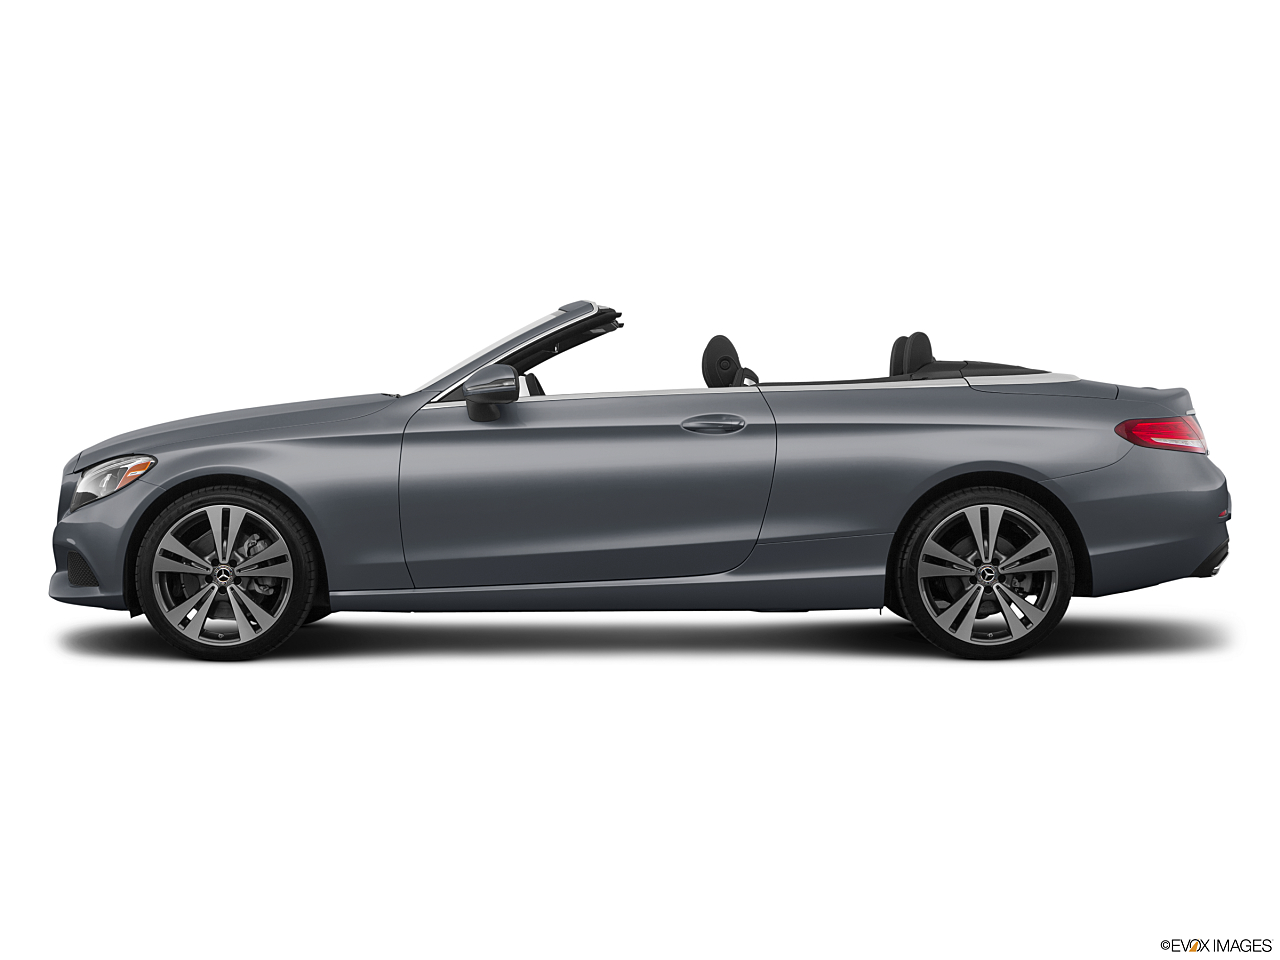 2018 Mercedes Benz C Class At Mercedes Benz Of El Paso Of El